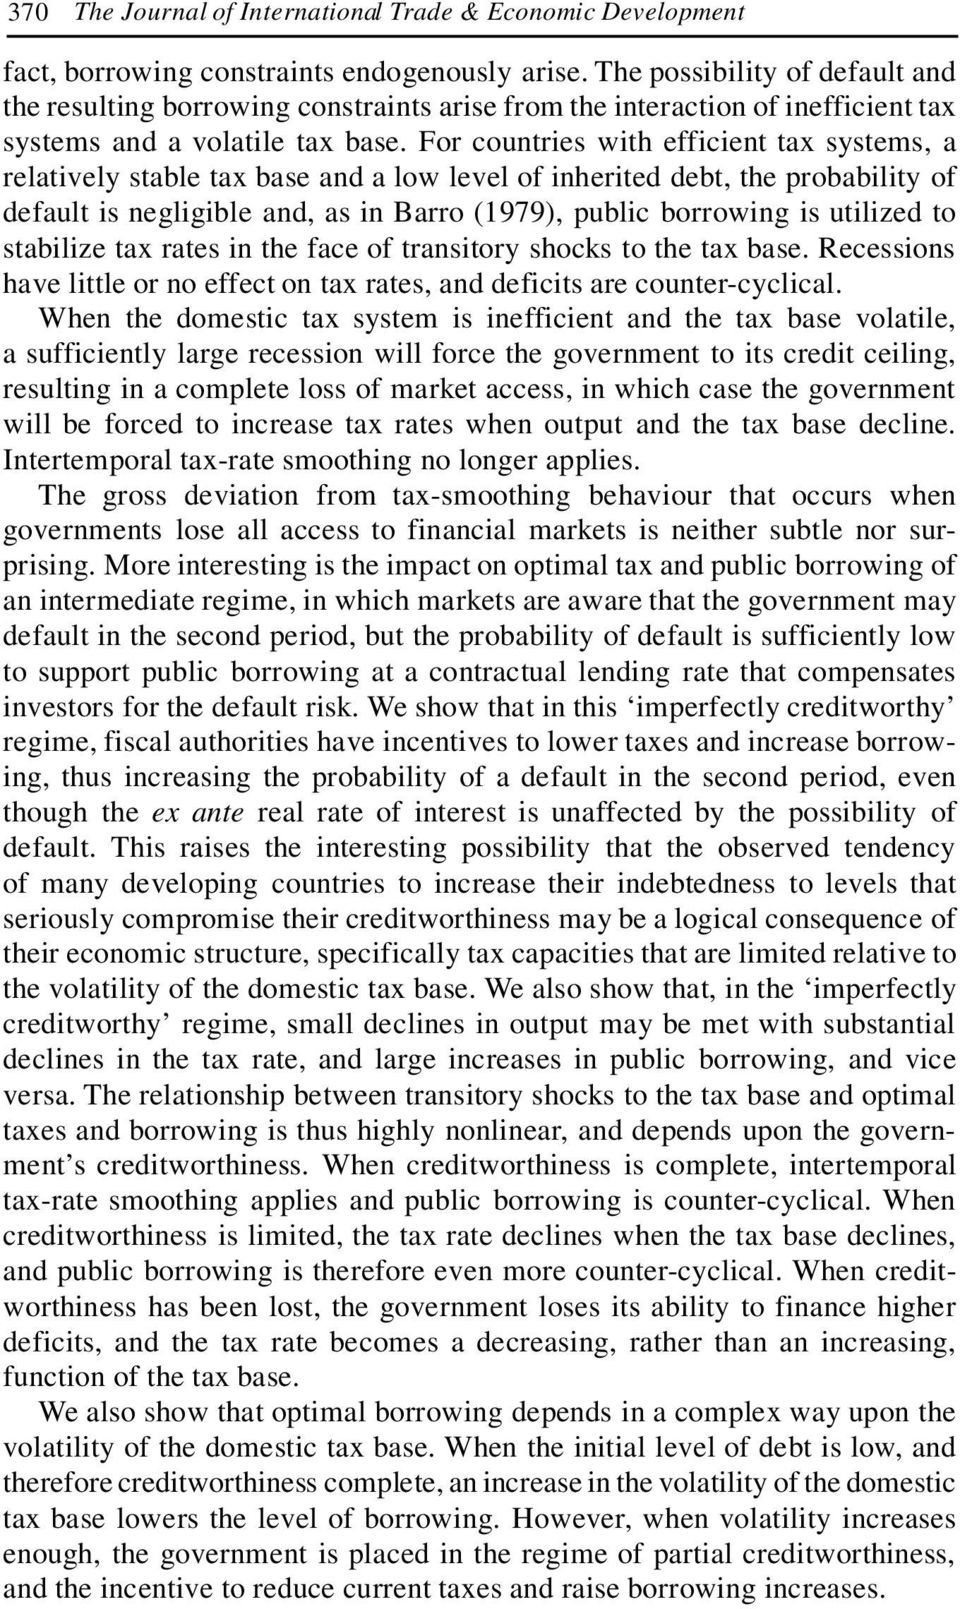 For countries with efficient tax systems, a relatively stable tax base and a low level of inherited debt, the probability of default is negligible and, as in Barro (979), public borrowing is utilized